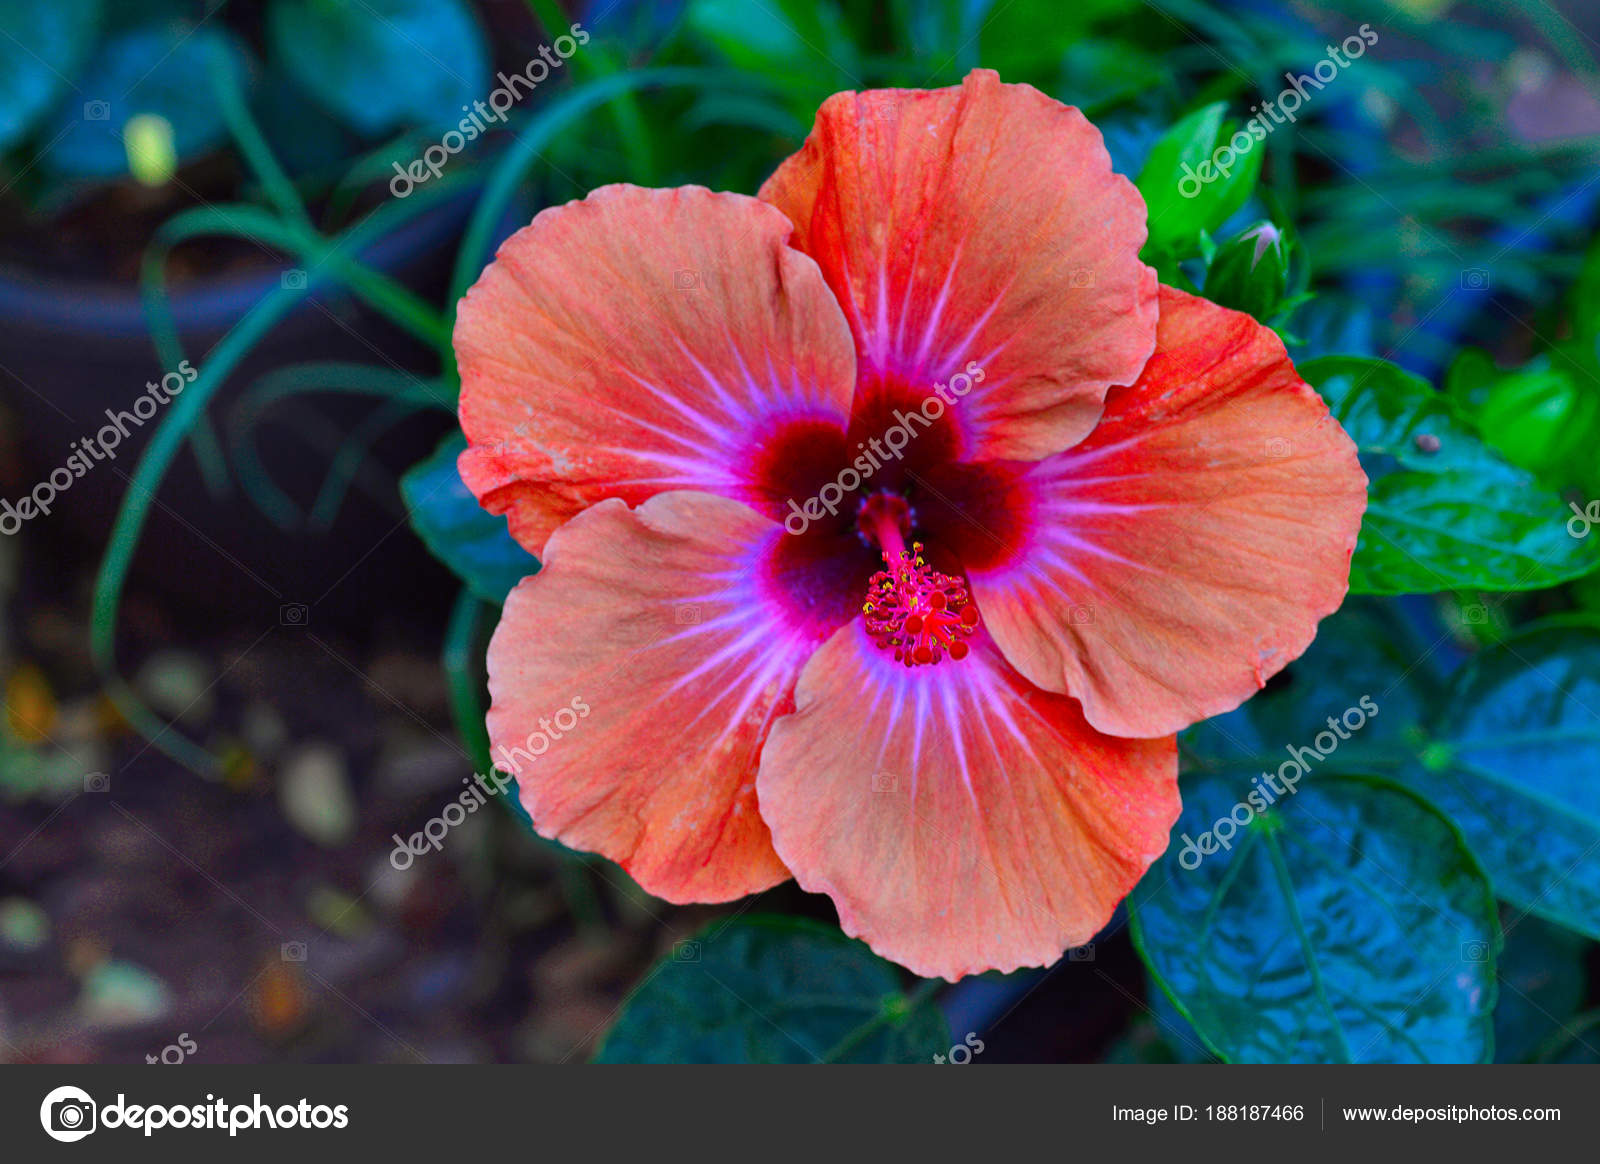 Orange hibiscus flower pune stock photo realityimages 188187466 close up of orange hibiscus flower at pune photo by realityimages izmirmasajfo